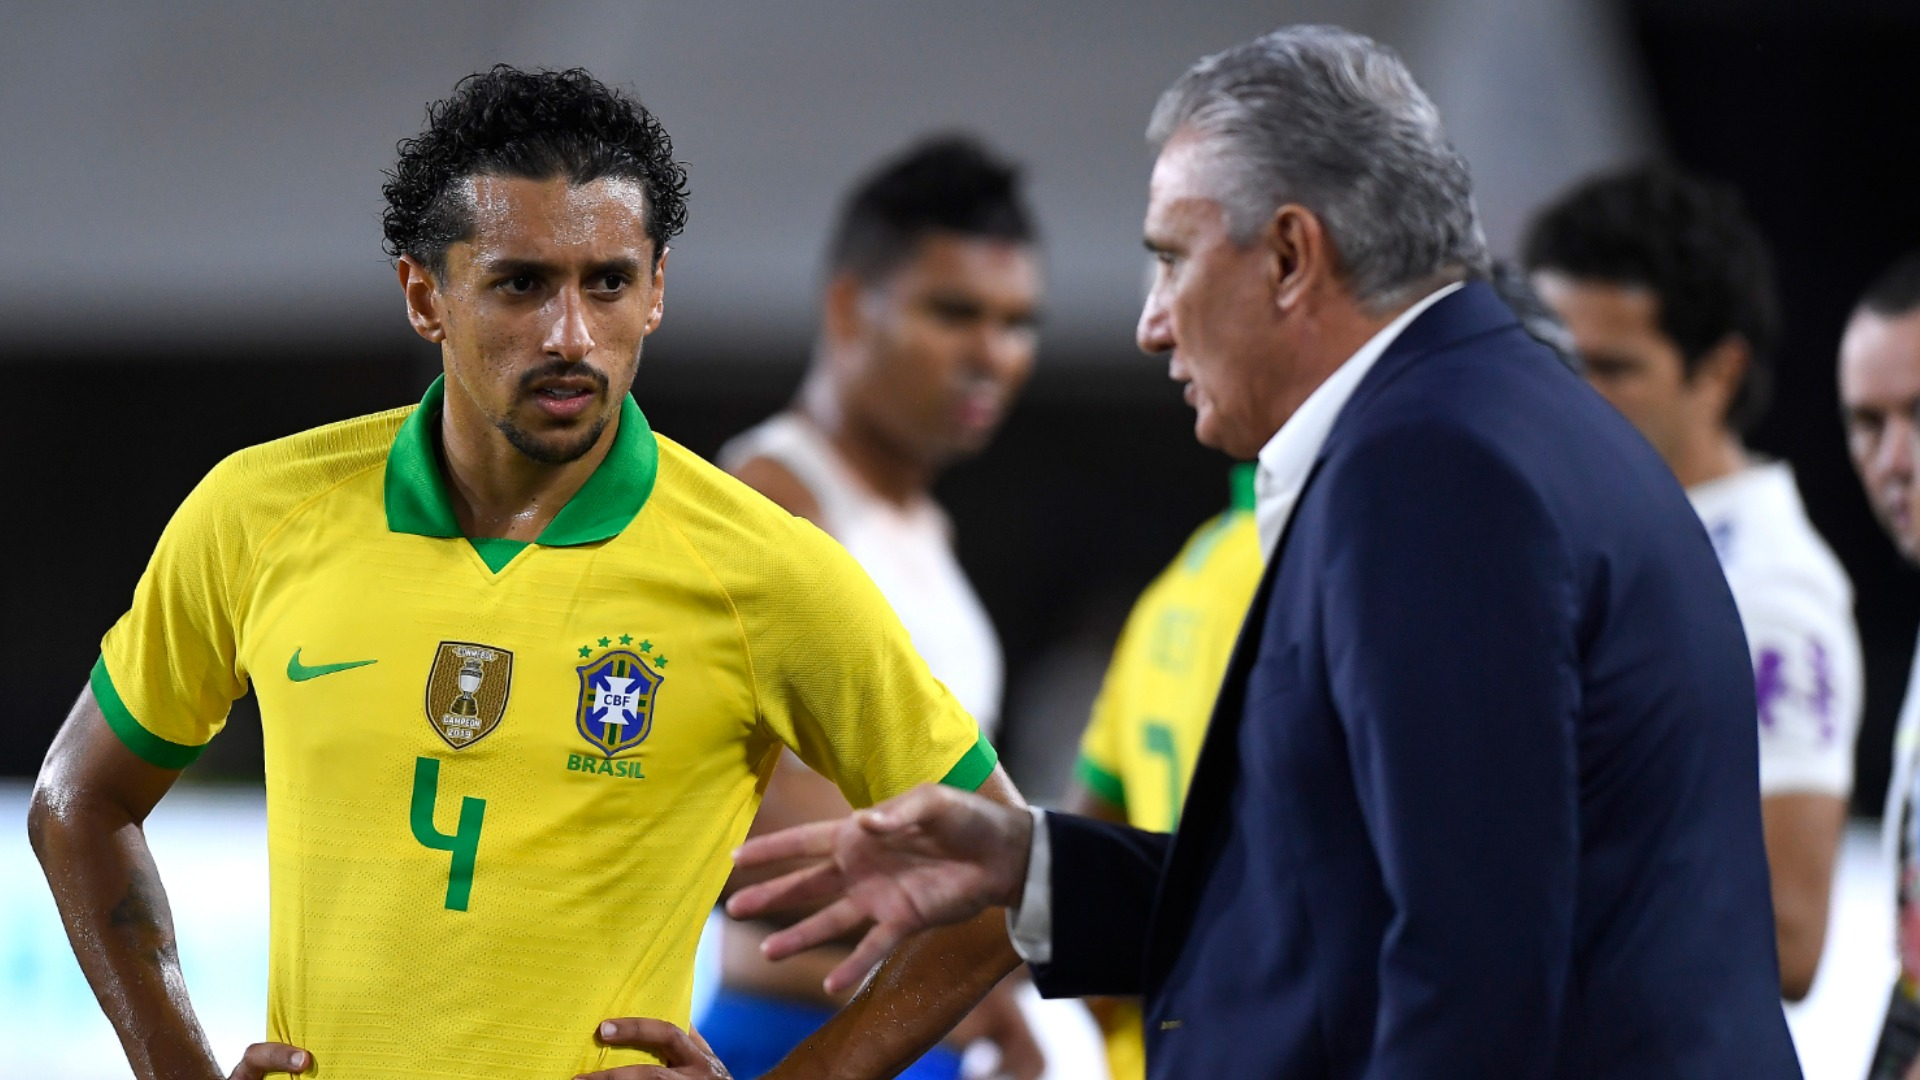 Tite: I made changes for the good of Brazil